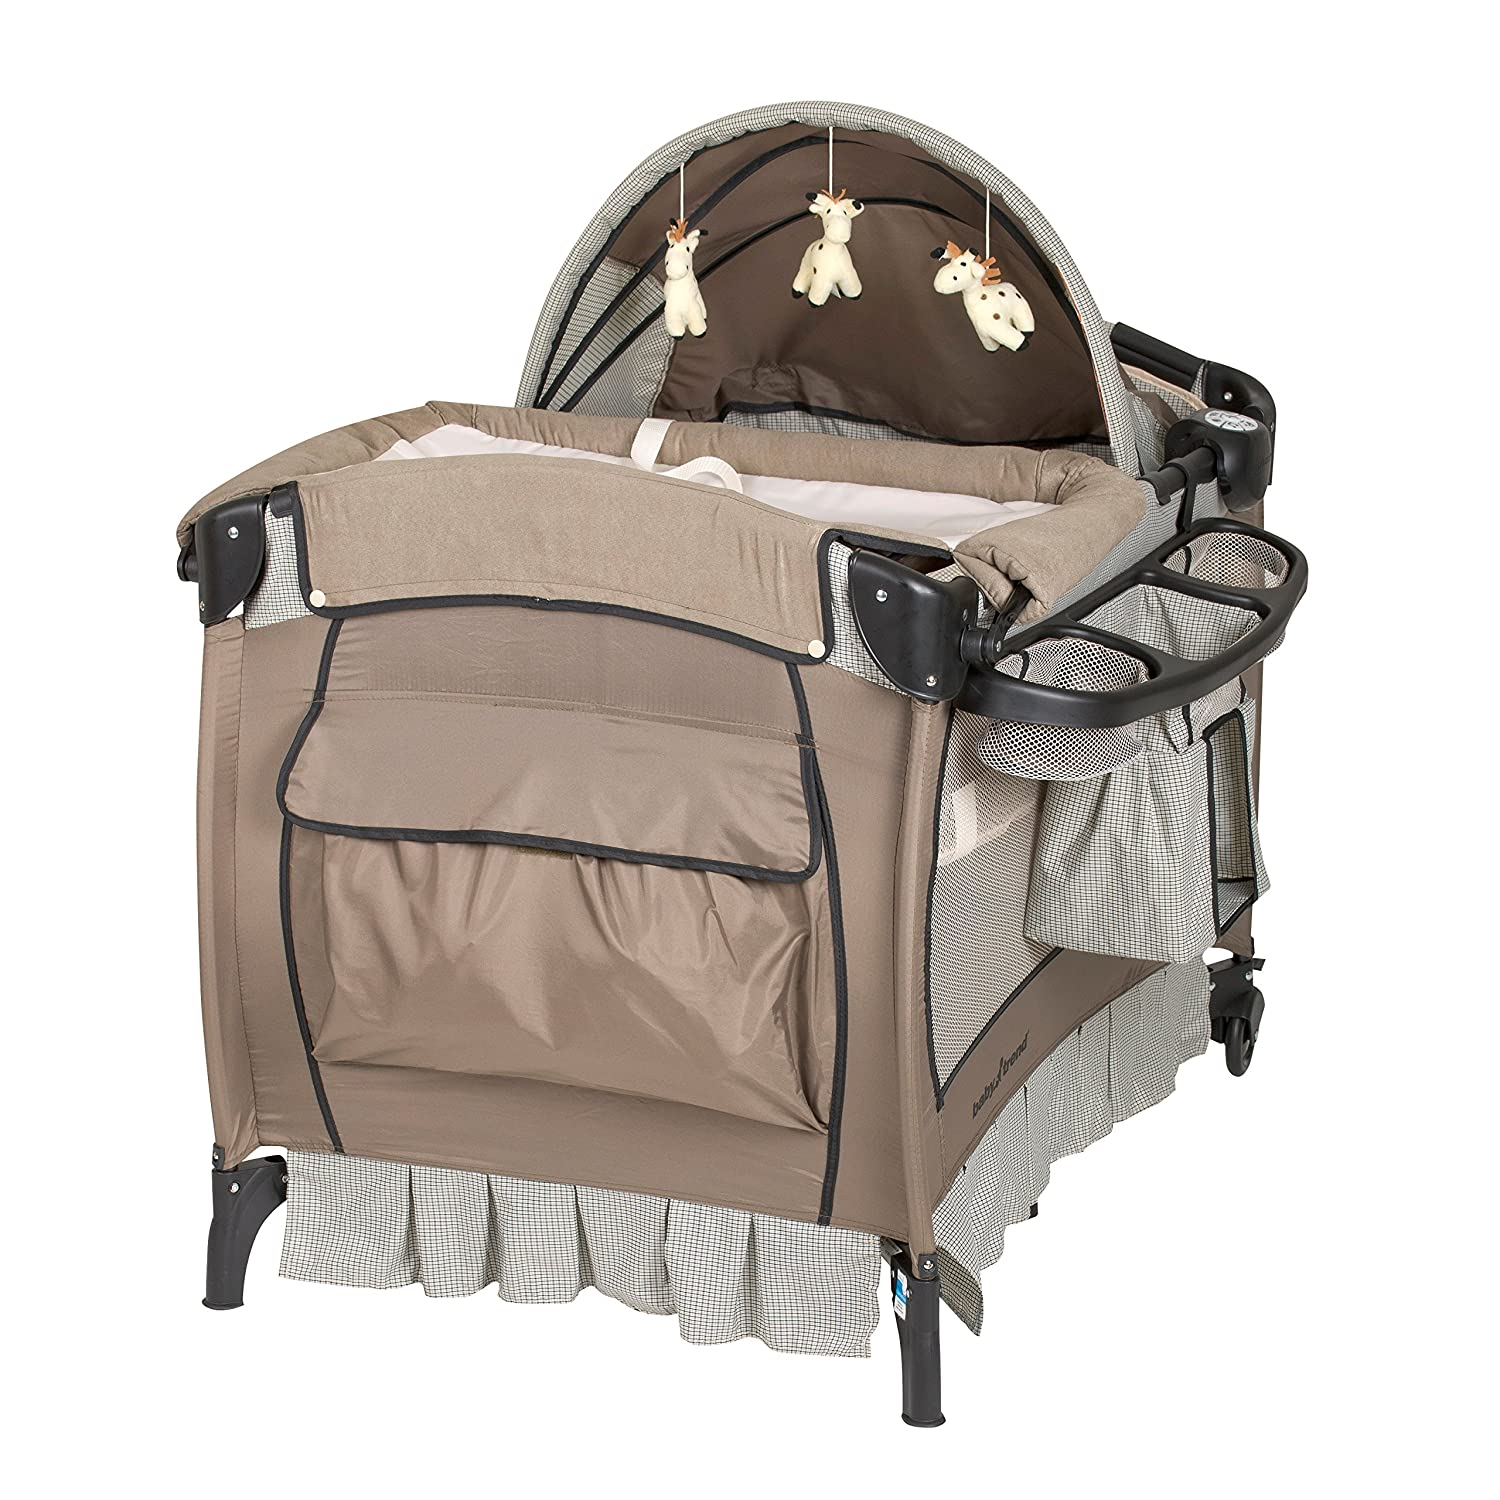 Baby bed in nigeria - Baby Bed In Nigeria 23